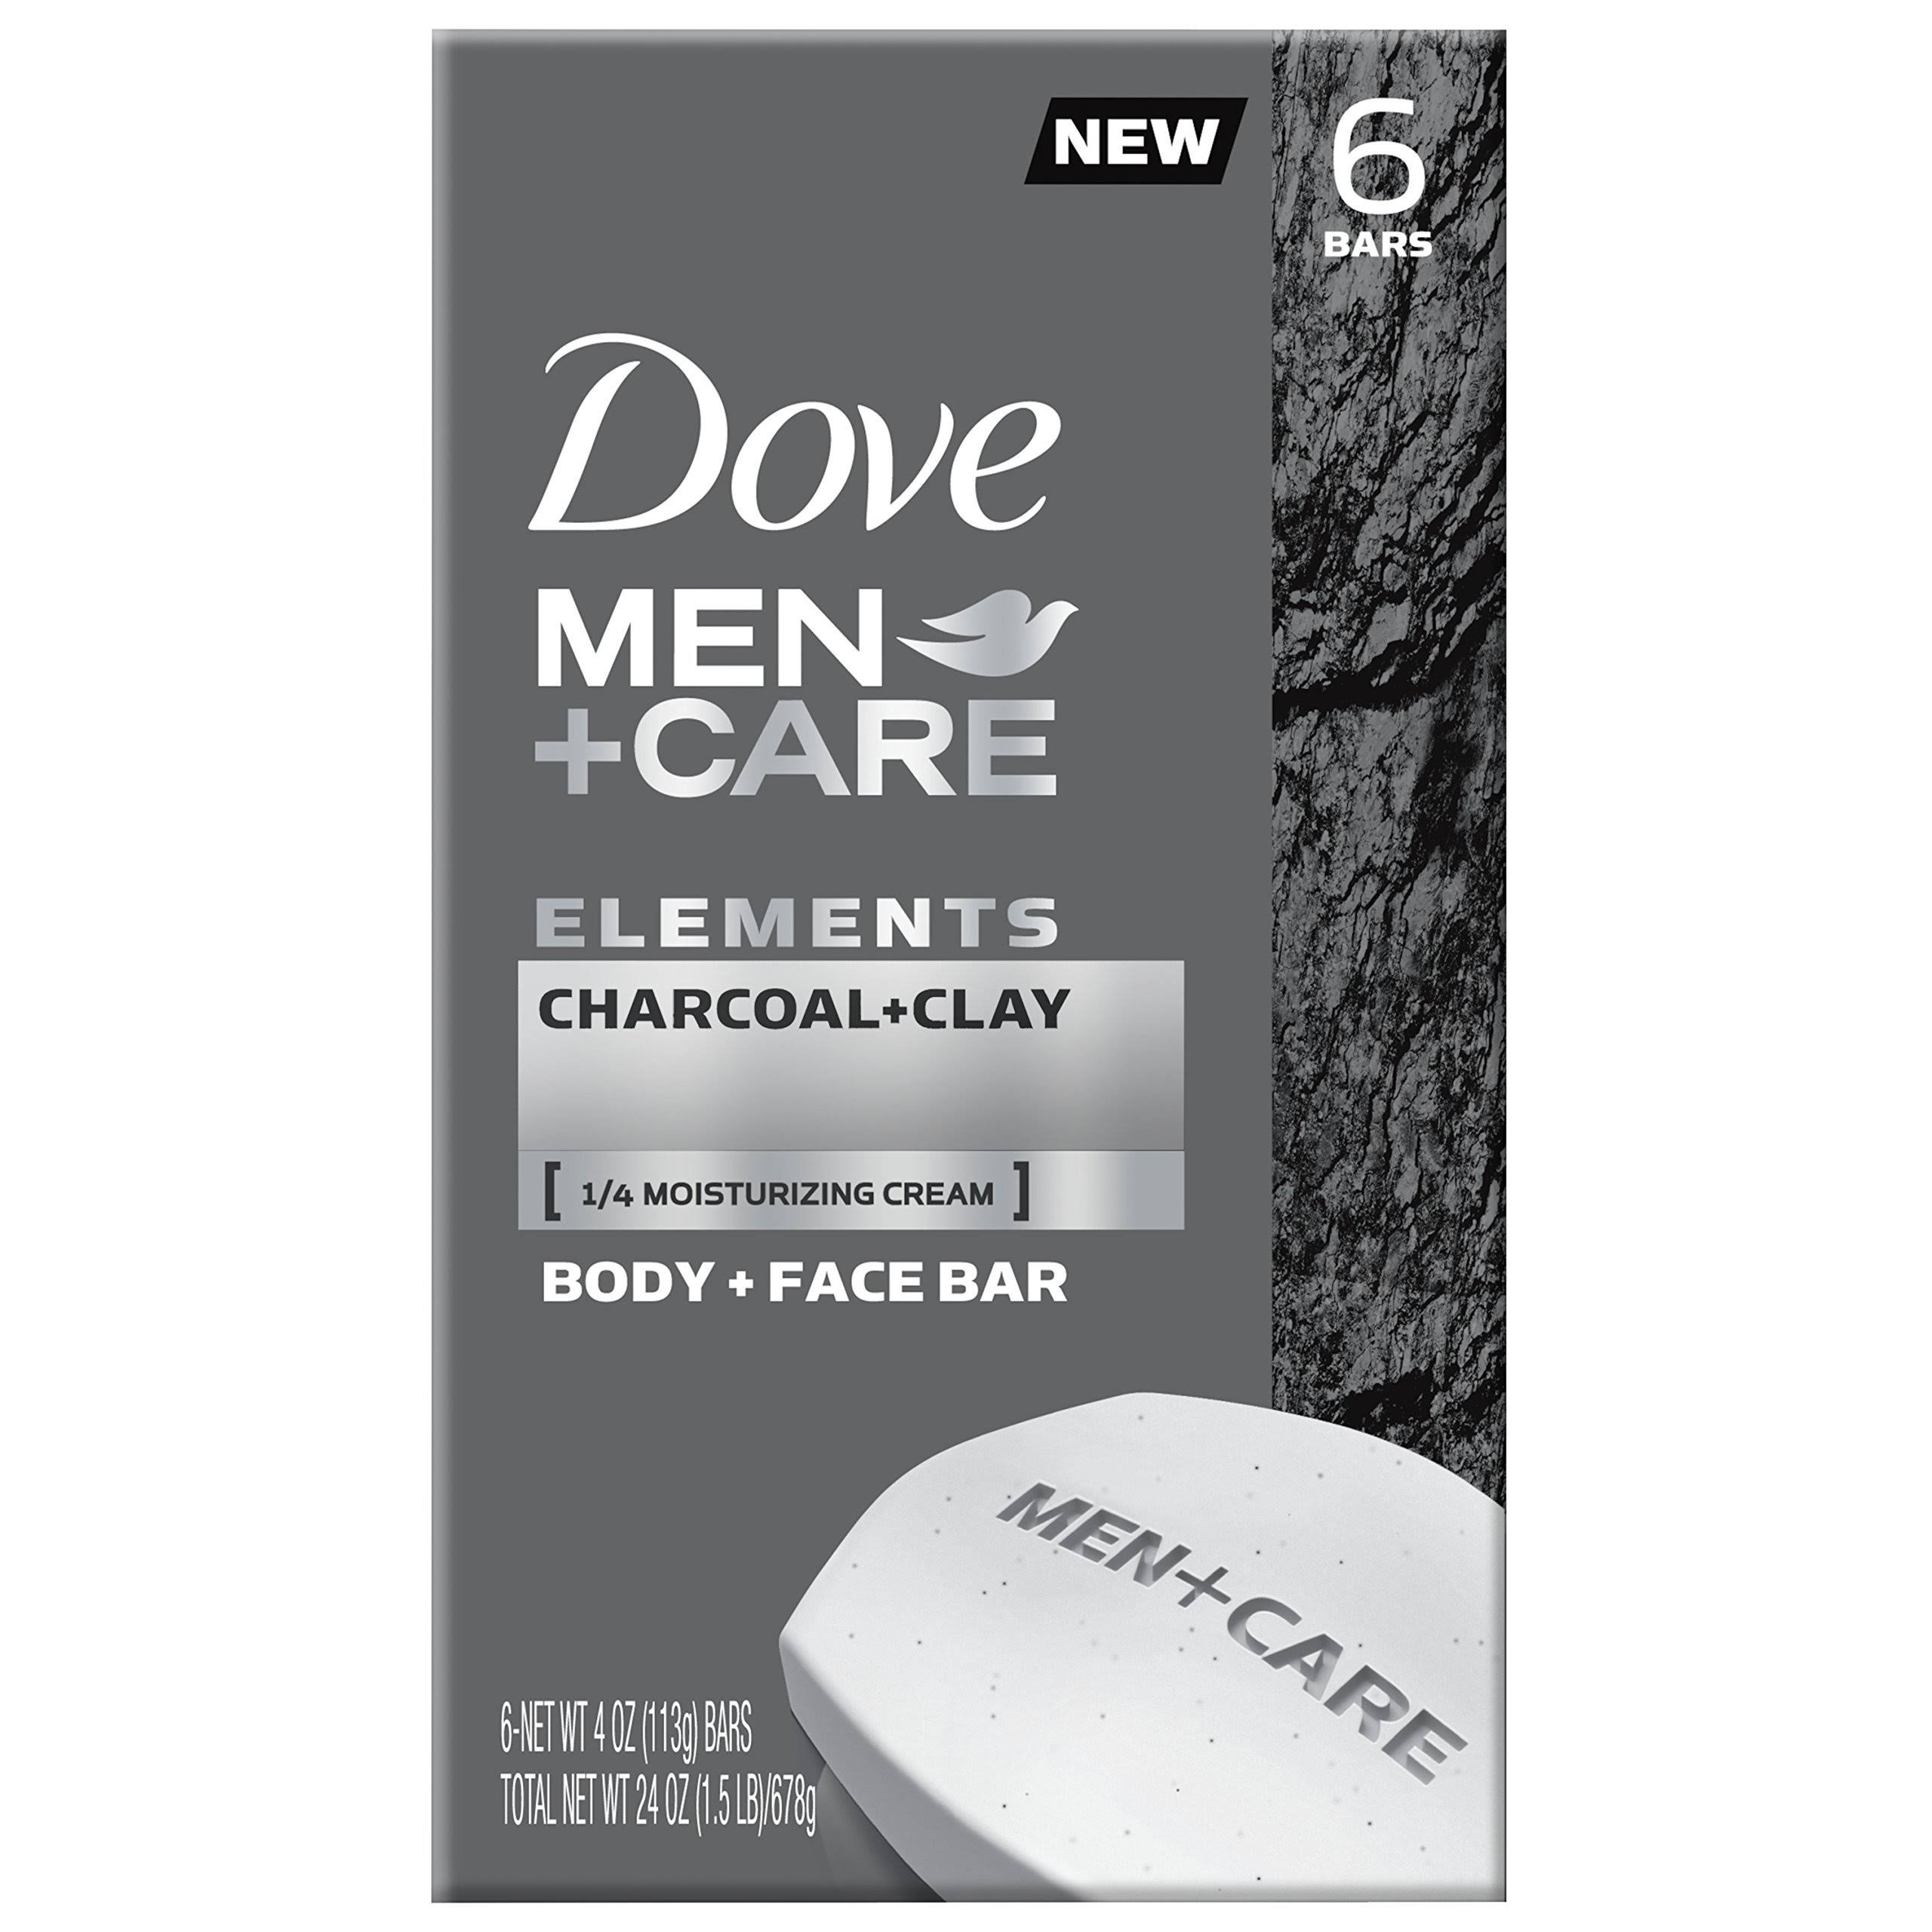 Dove Men+Care Elements Body and Face Bar Soap - Charcoal+Clay, 4oz, 6pk